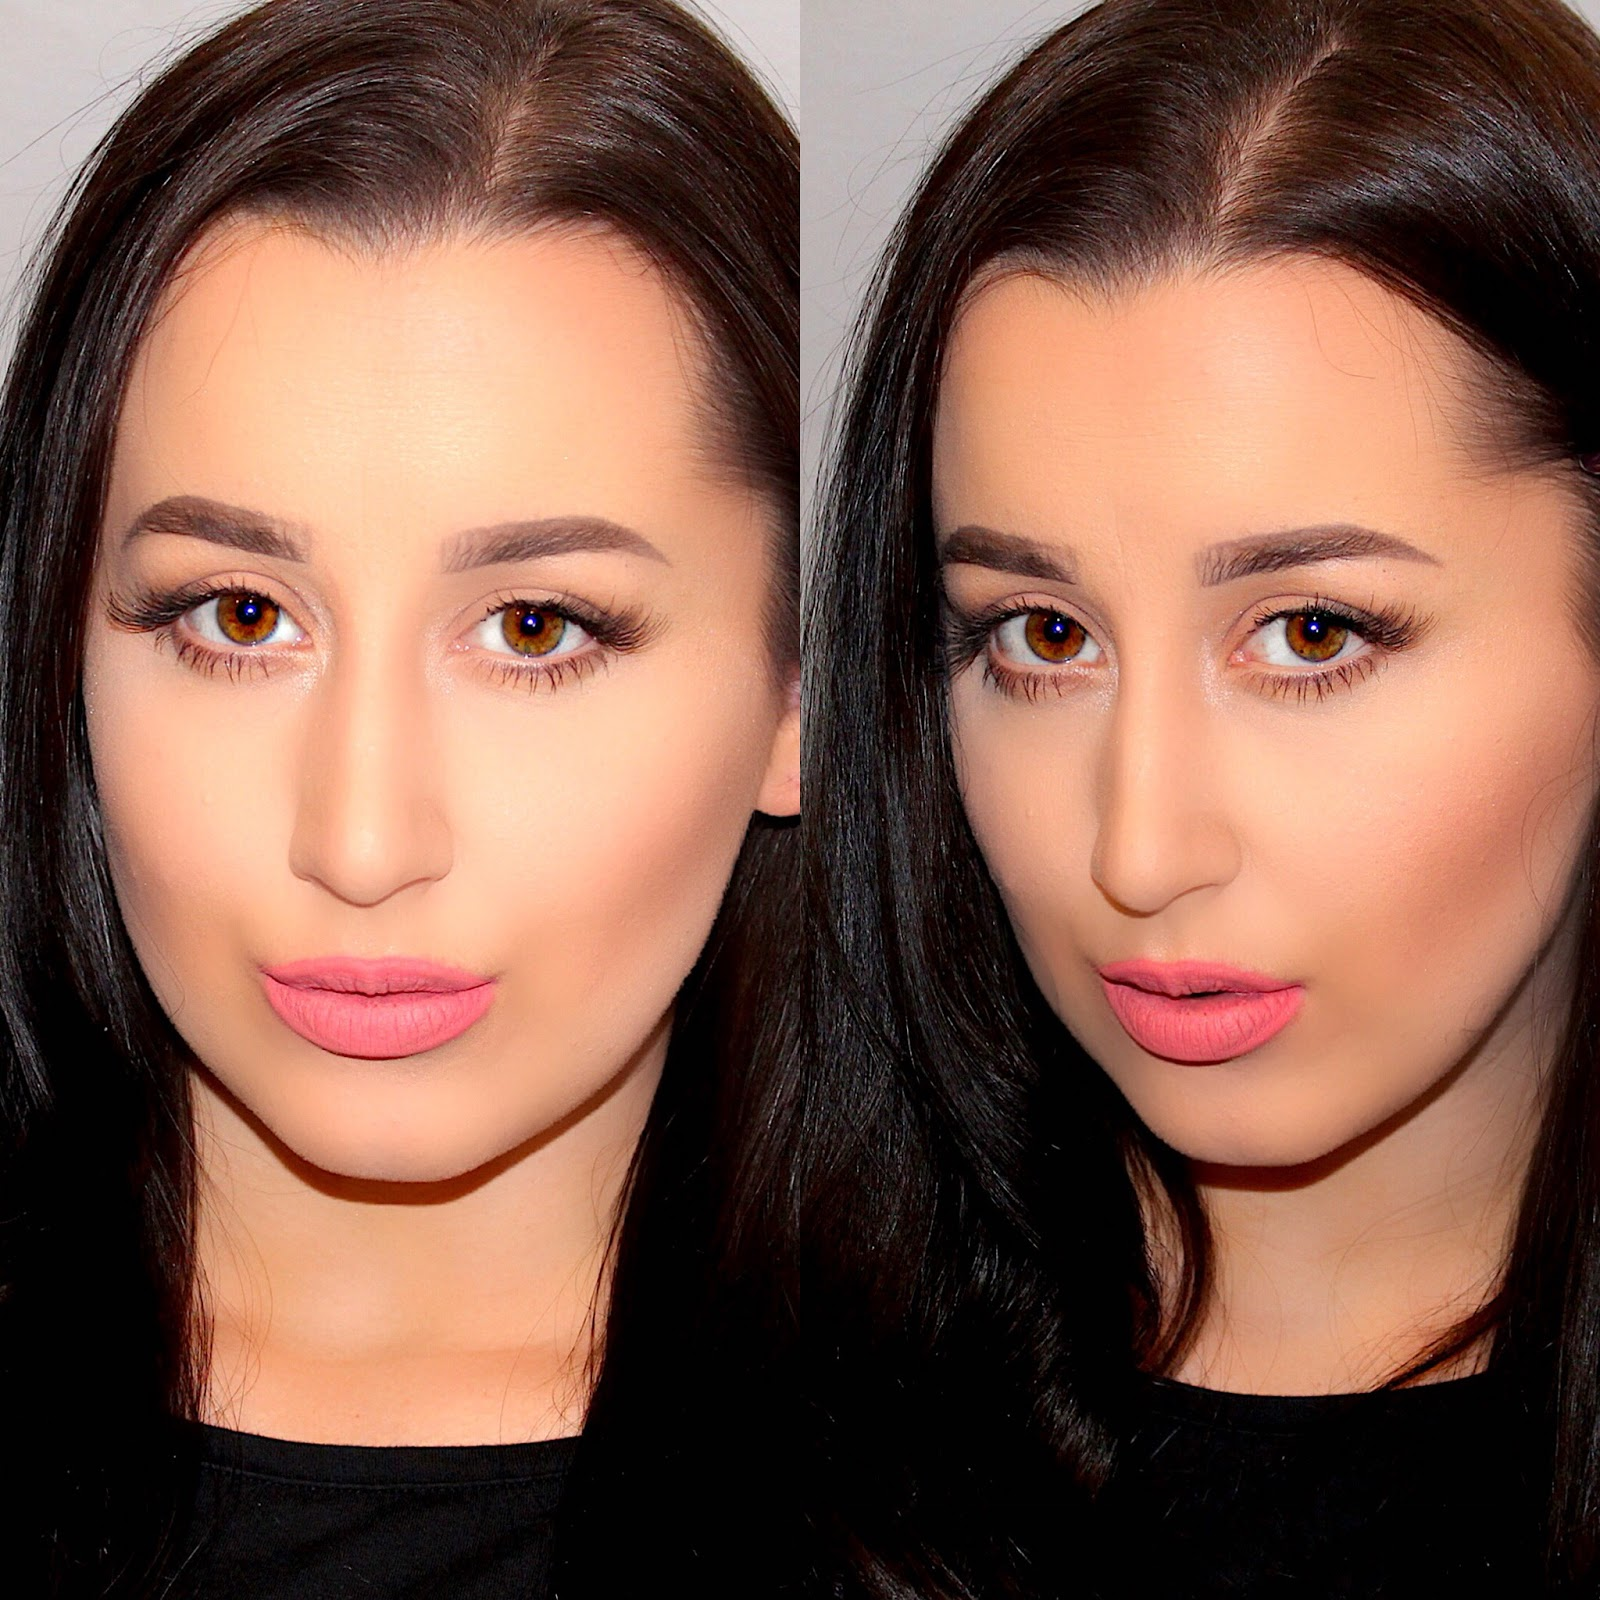 Ashley riley december 2015 makeup beauty and style how to do a simple everyday eye contour and makeup tutorial baditri Images